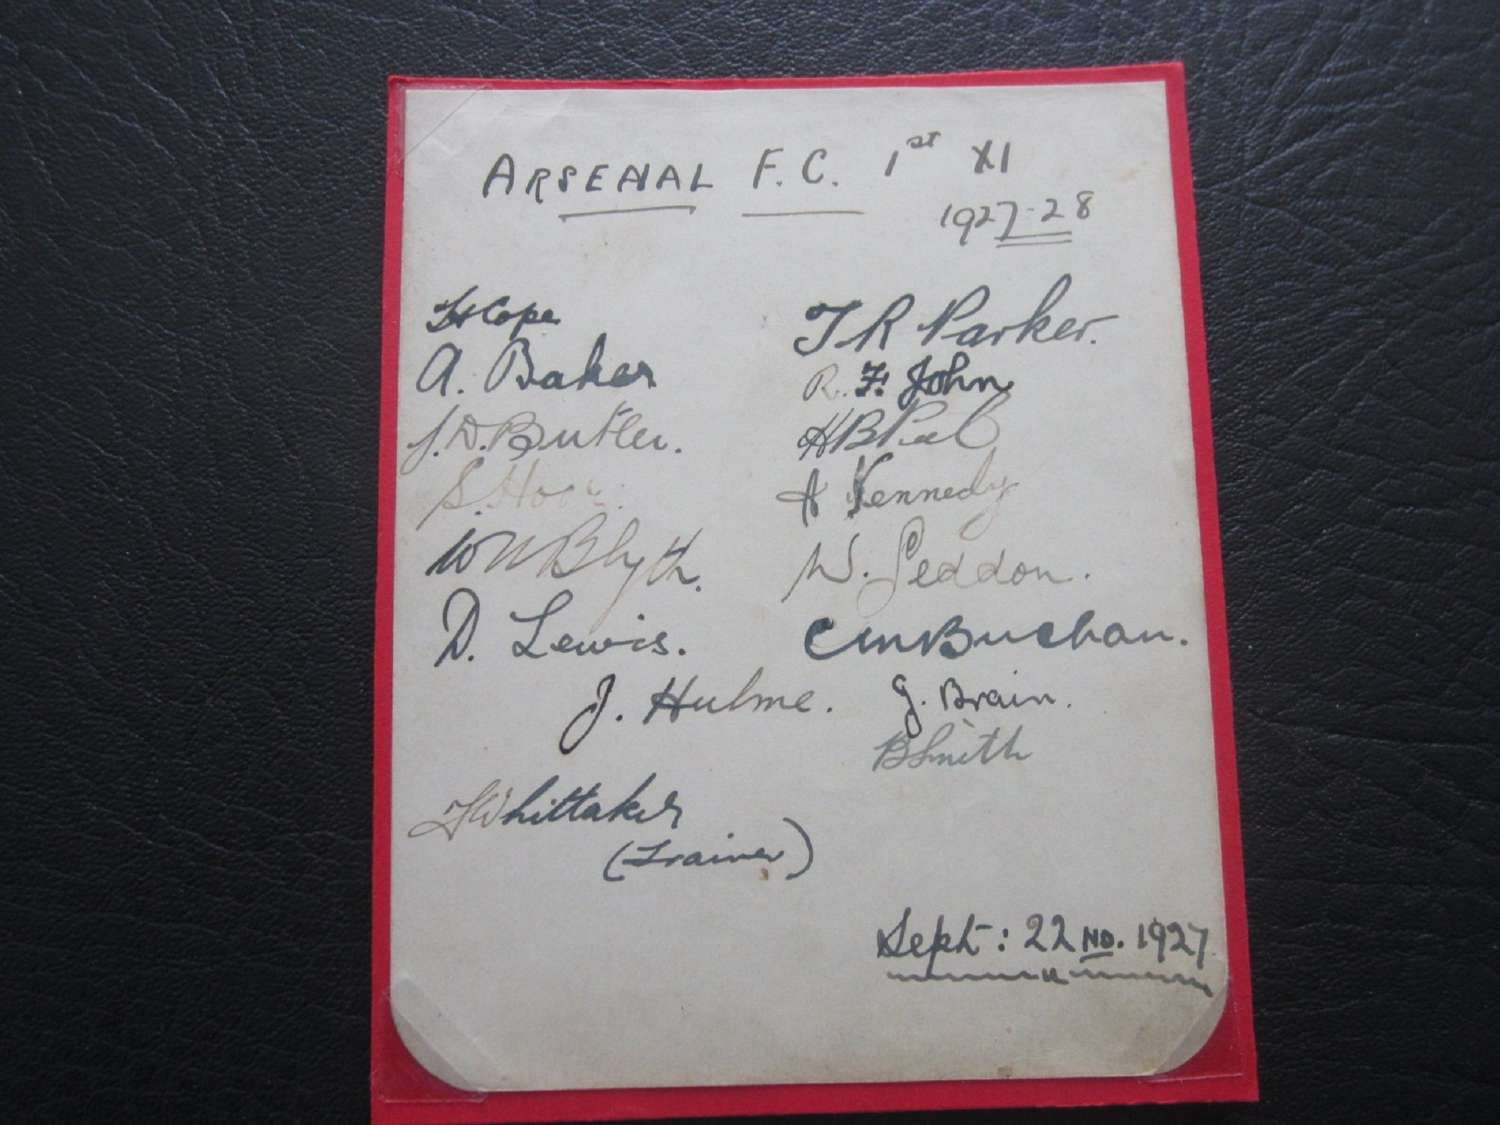 Arsenal 1927-28 Cup Final Team Autograph Page